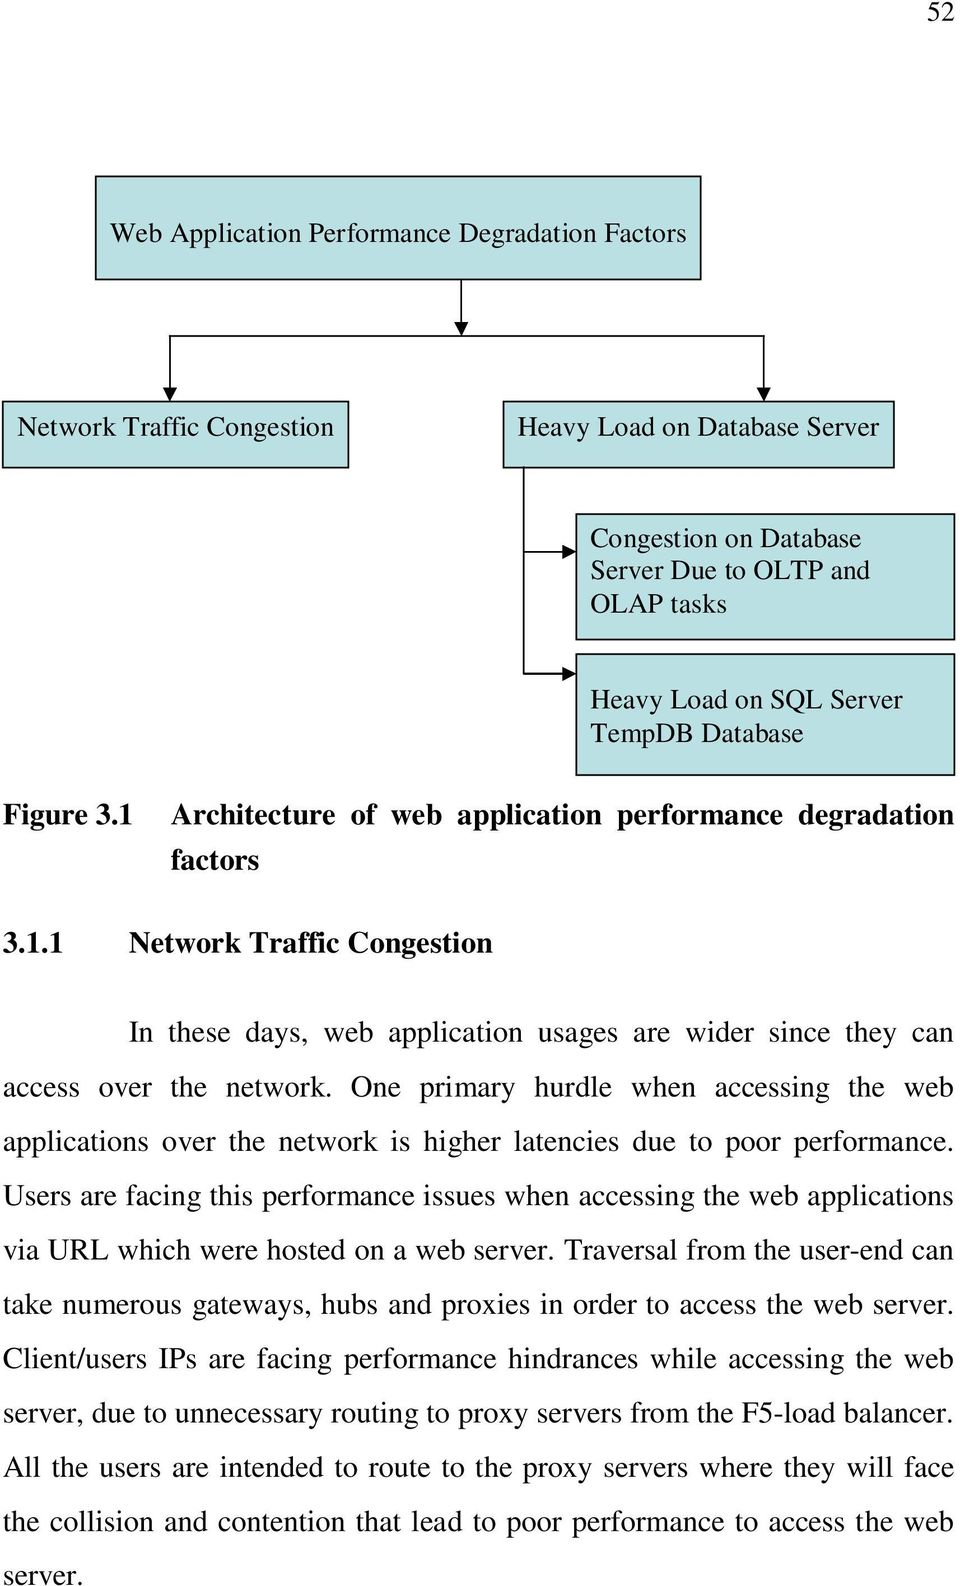 One primary hurdle when accessing the web applications over the network is higher latencies due to poor performance.